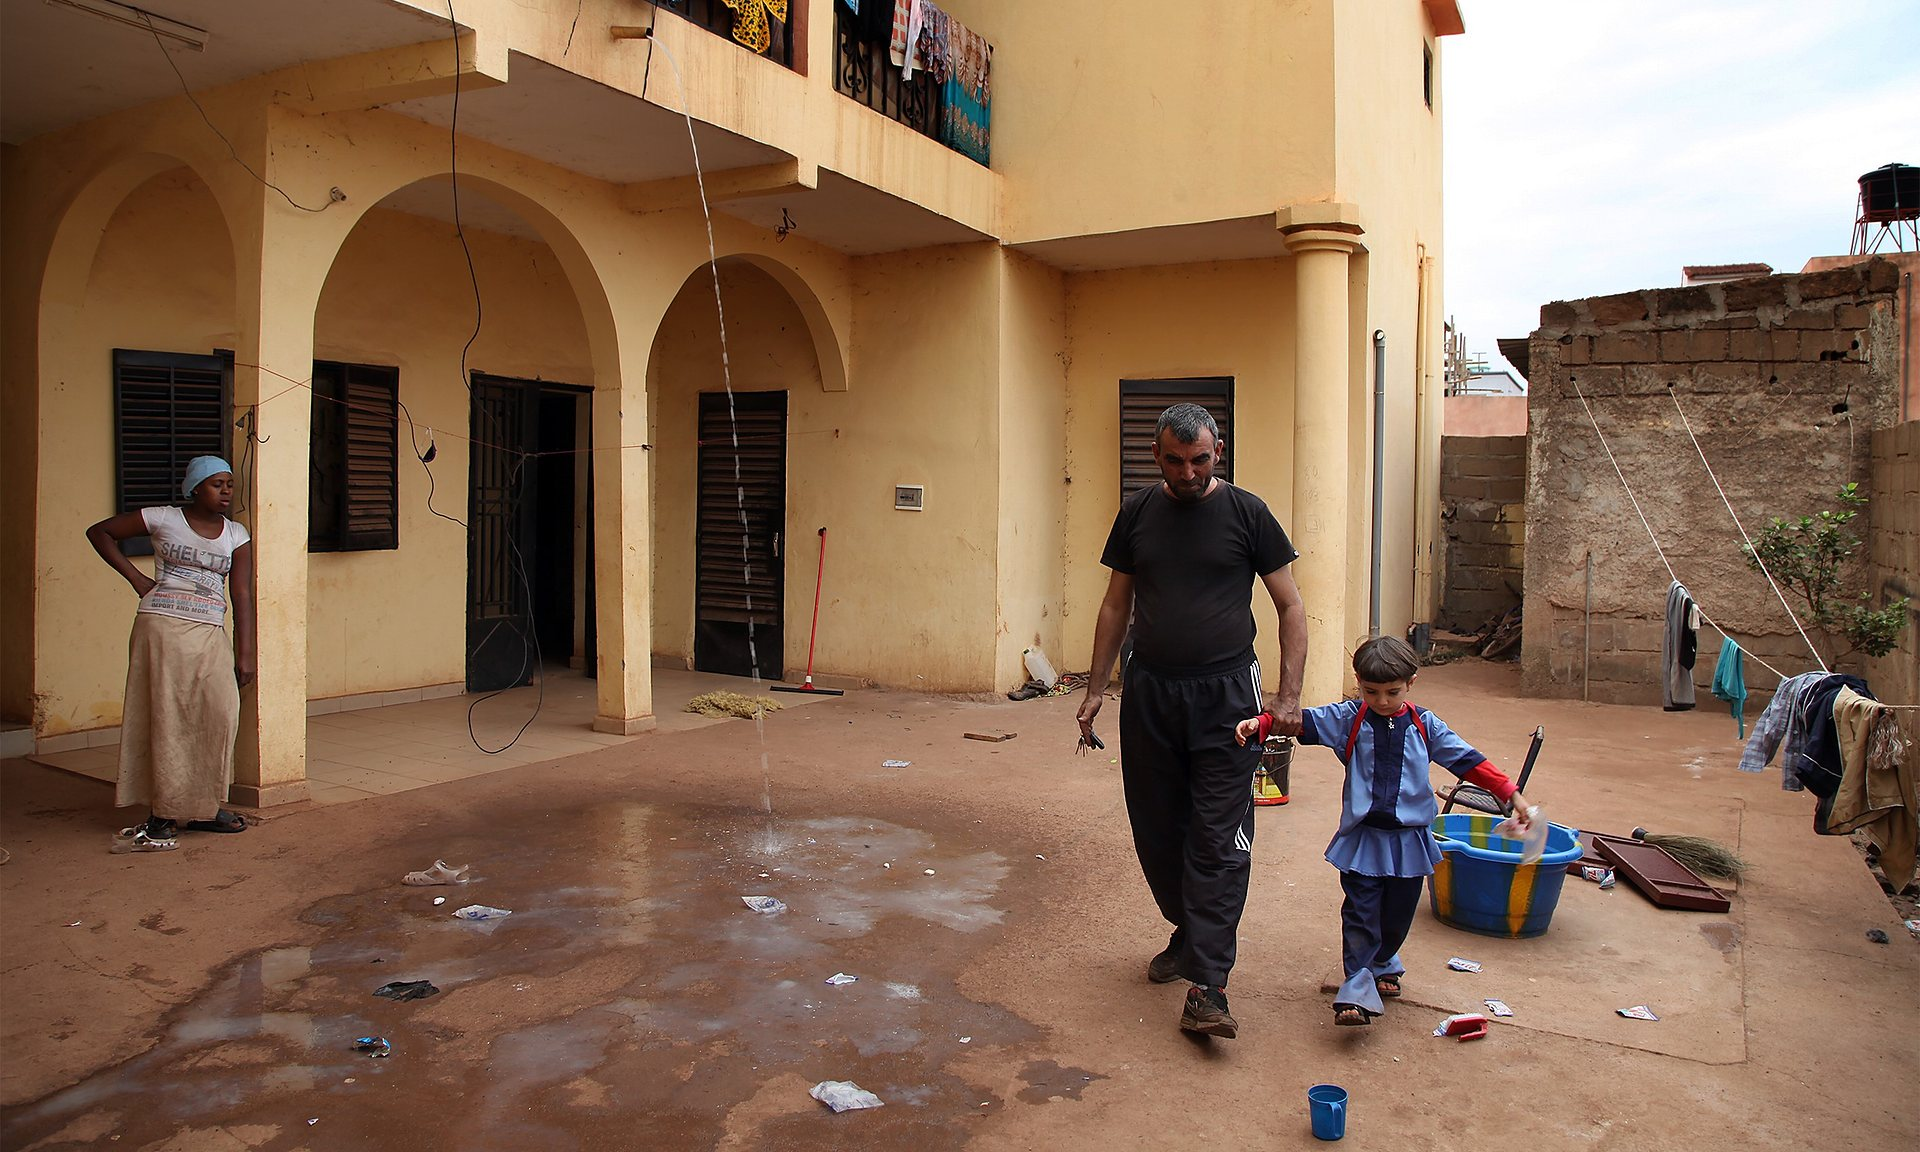 Cemal Ahmed, a 40-year-old refugee from the civil war in Syria, plays with his daughter at their apartment block in Bamako. Photograph: Baba Ahmed/Getty Images